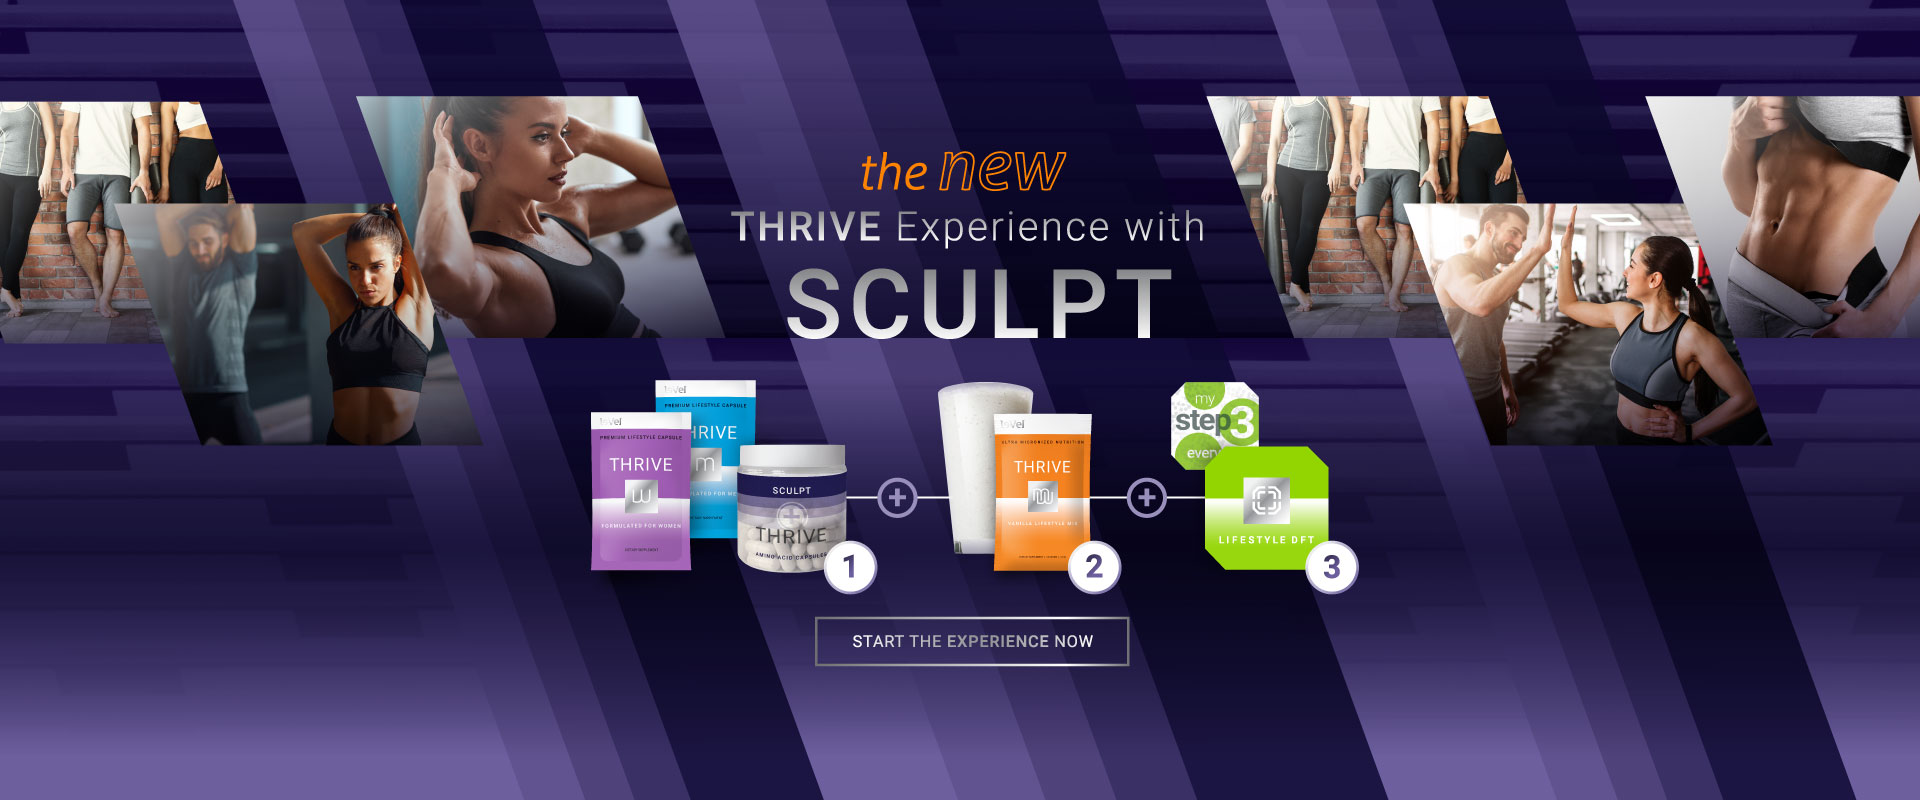 The New THRIVE Sculpt Experience - START THE EXPERIENCE NOW